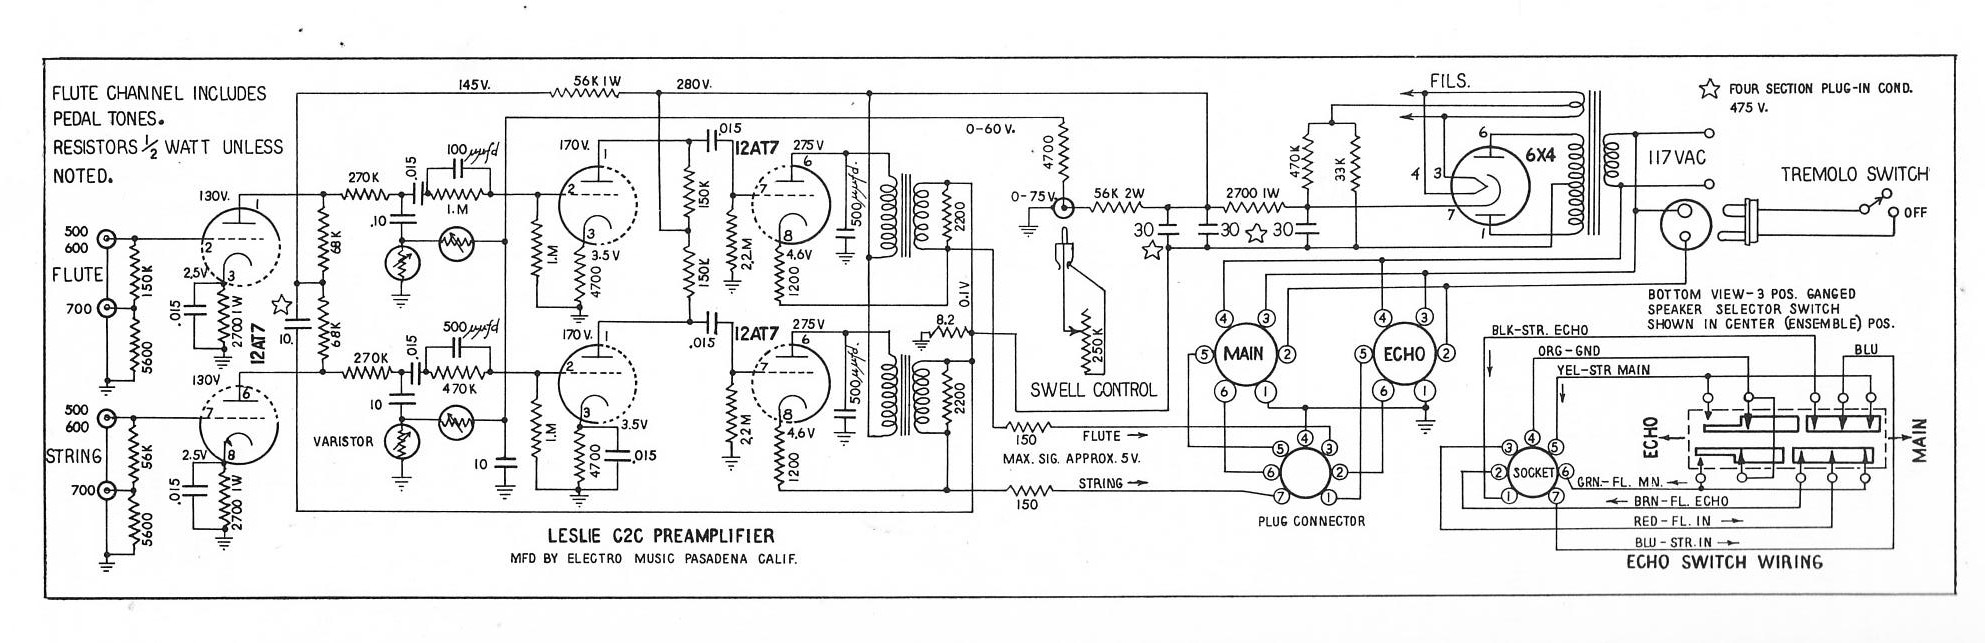 Bi Wire Fire Alarm Wiring Diagram Automotive Circuit Of The Dummy Load Scully Johnson Outboard Notifier Riser